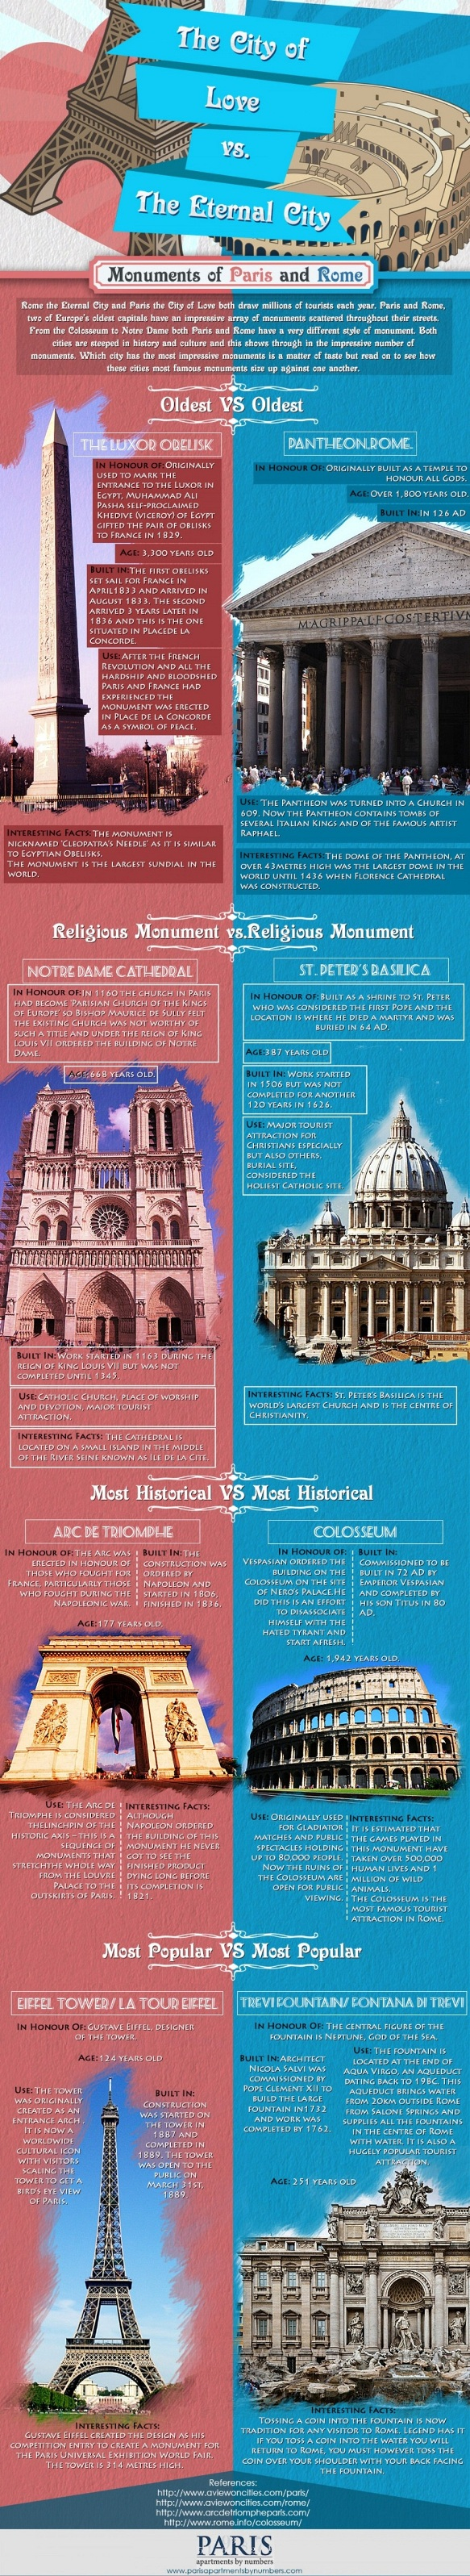 the-city-of-love-vs-the-eternal-city_527b406ca122e_w1500